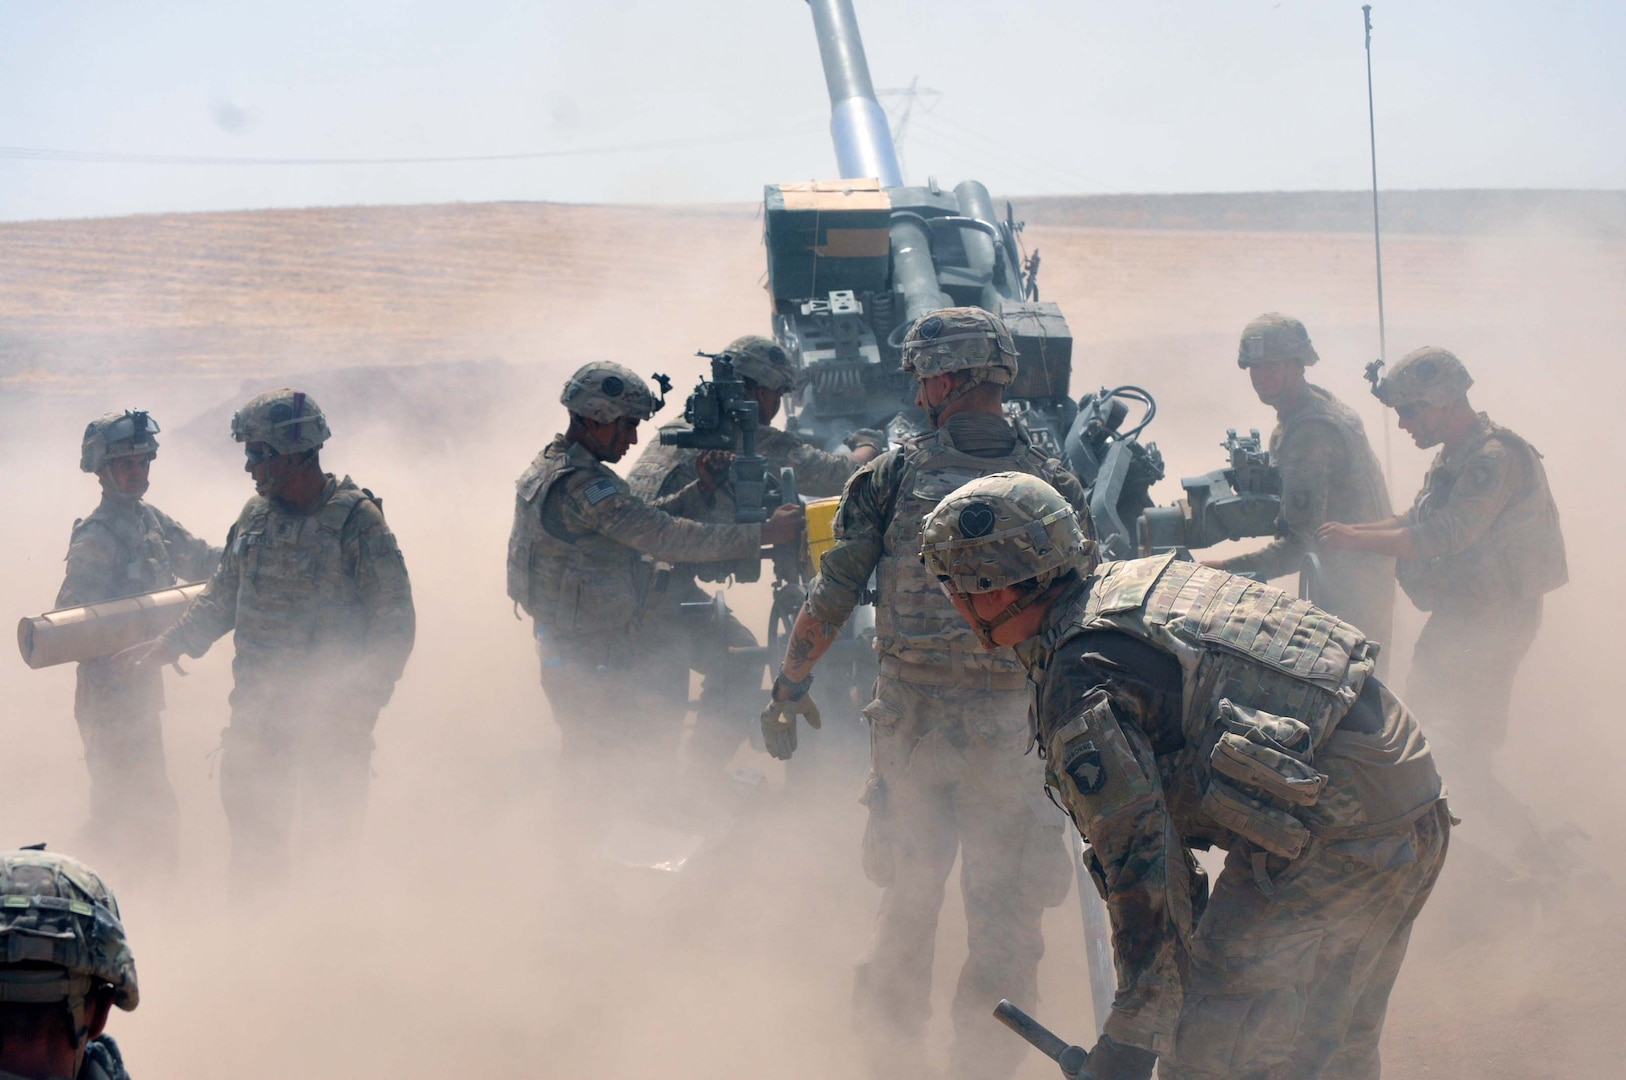 In this file photo taken Aug. 15, 2016, U.S Army Soldiers, Battery C, 1st Battalion, 320th Field Artillery Regiment, Task Force Strike, begin their crew drill to load another round for a fire mission in northern Iraq. The 526th Brigade Support Battalion's Support Operations Cell and the 336th Combat Support Sustainment battalion's movement control team in Erbil have sustained operations like this one which are critical to defeat the Islamic State of Iraq and the Levant. (U.S. Army photo by 1st Lt. Daniel I Johnson)